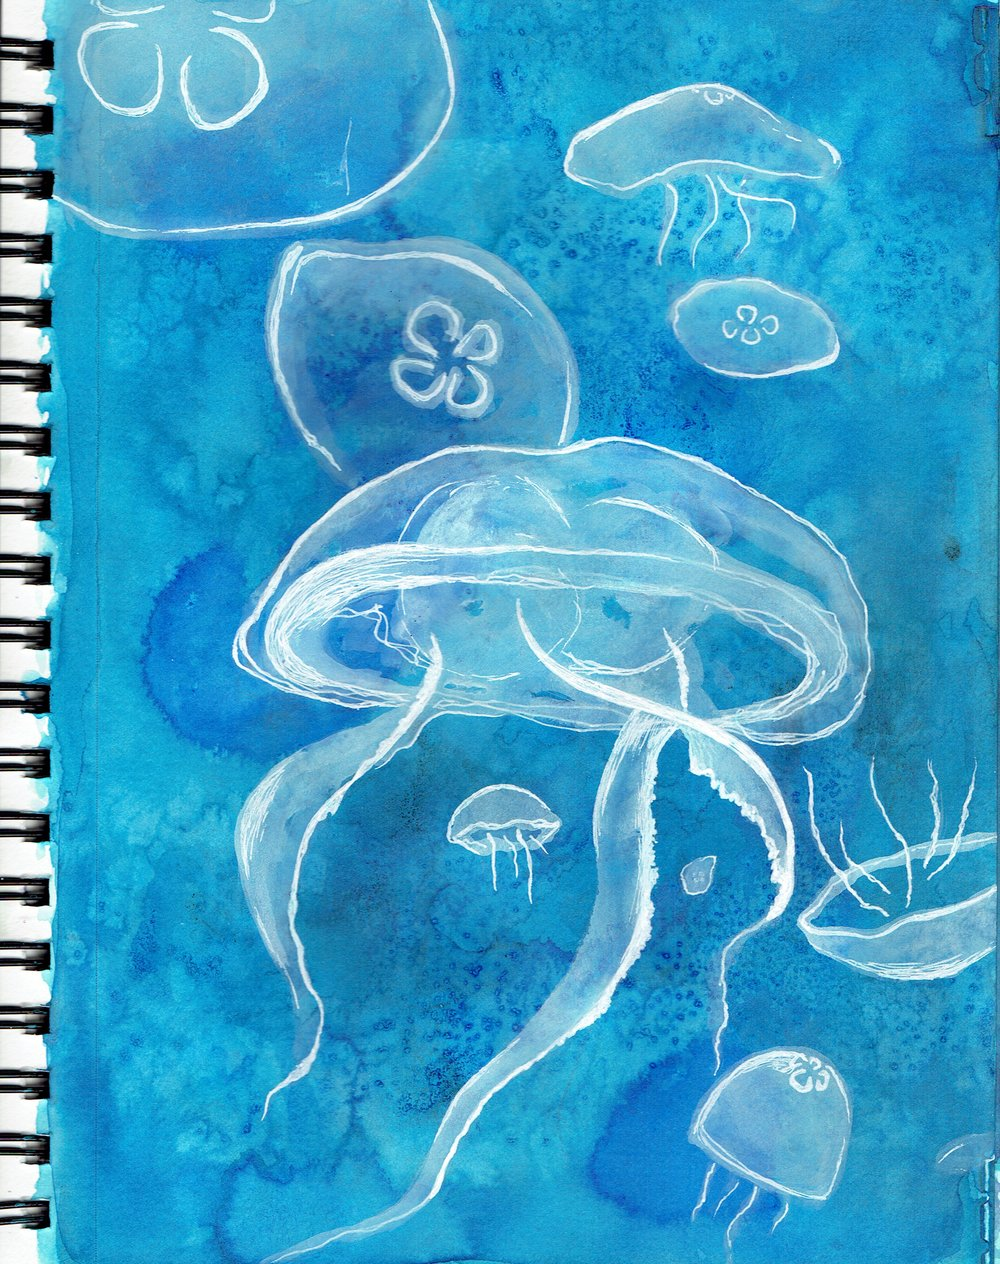 10/23: More jellyfish